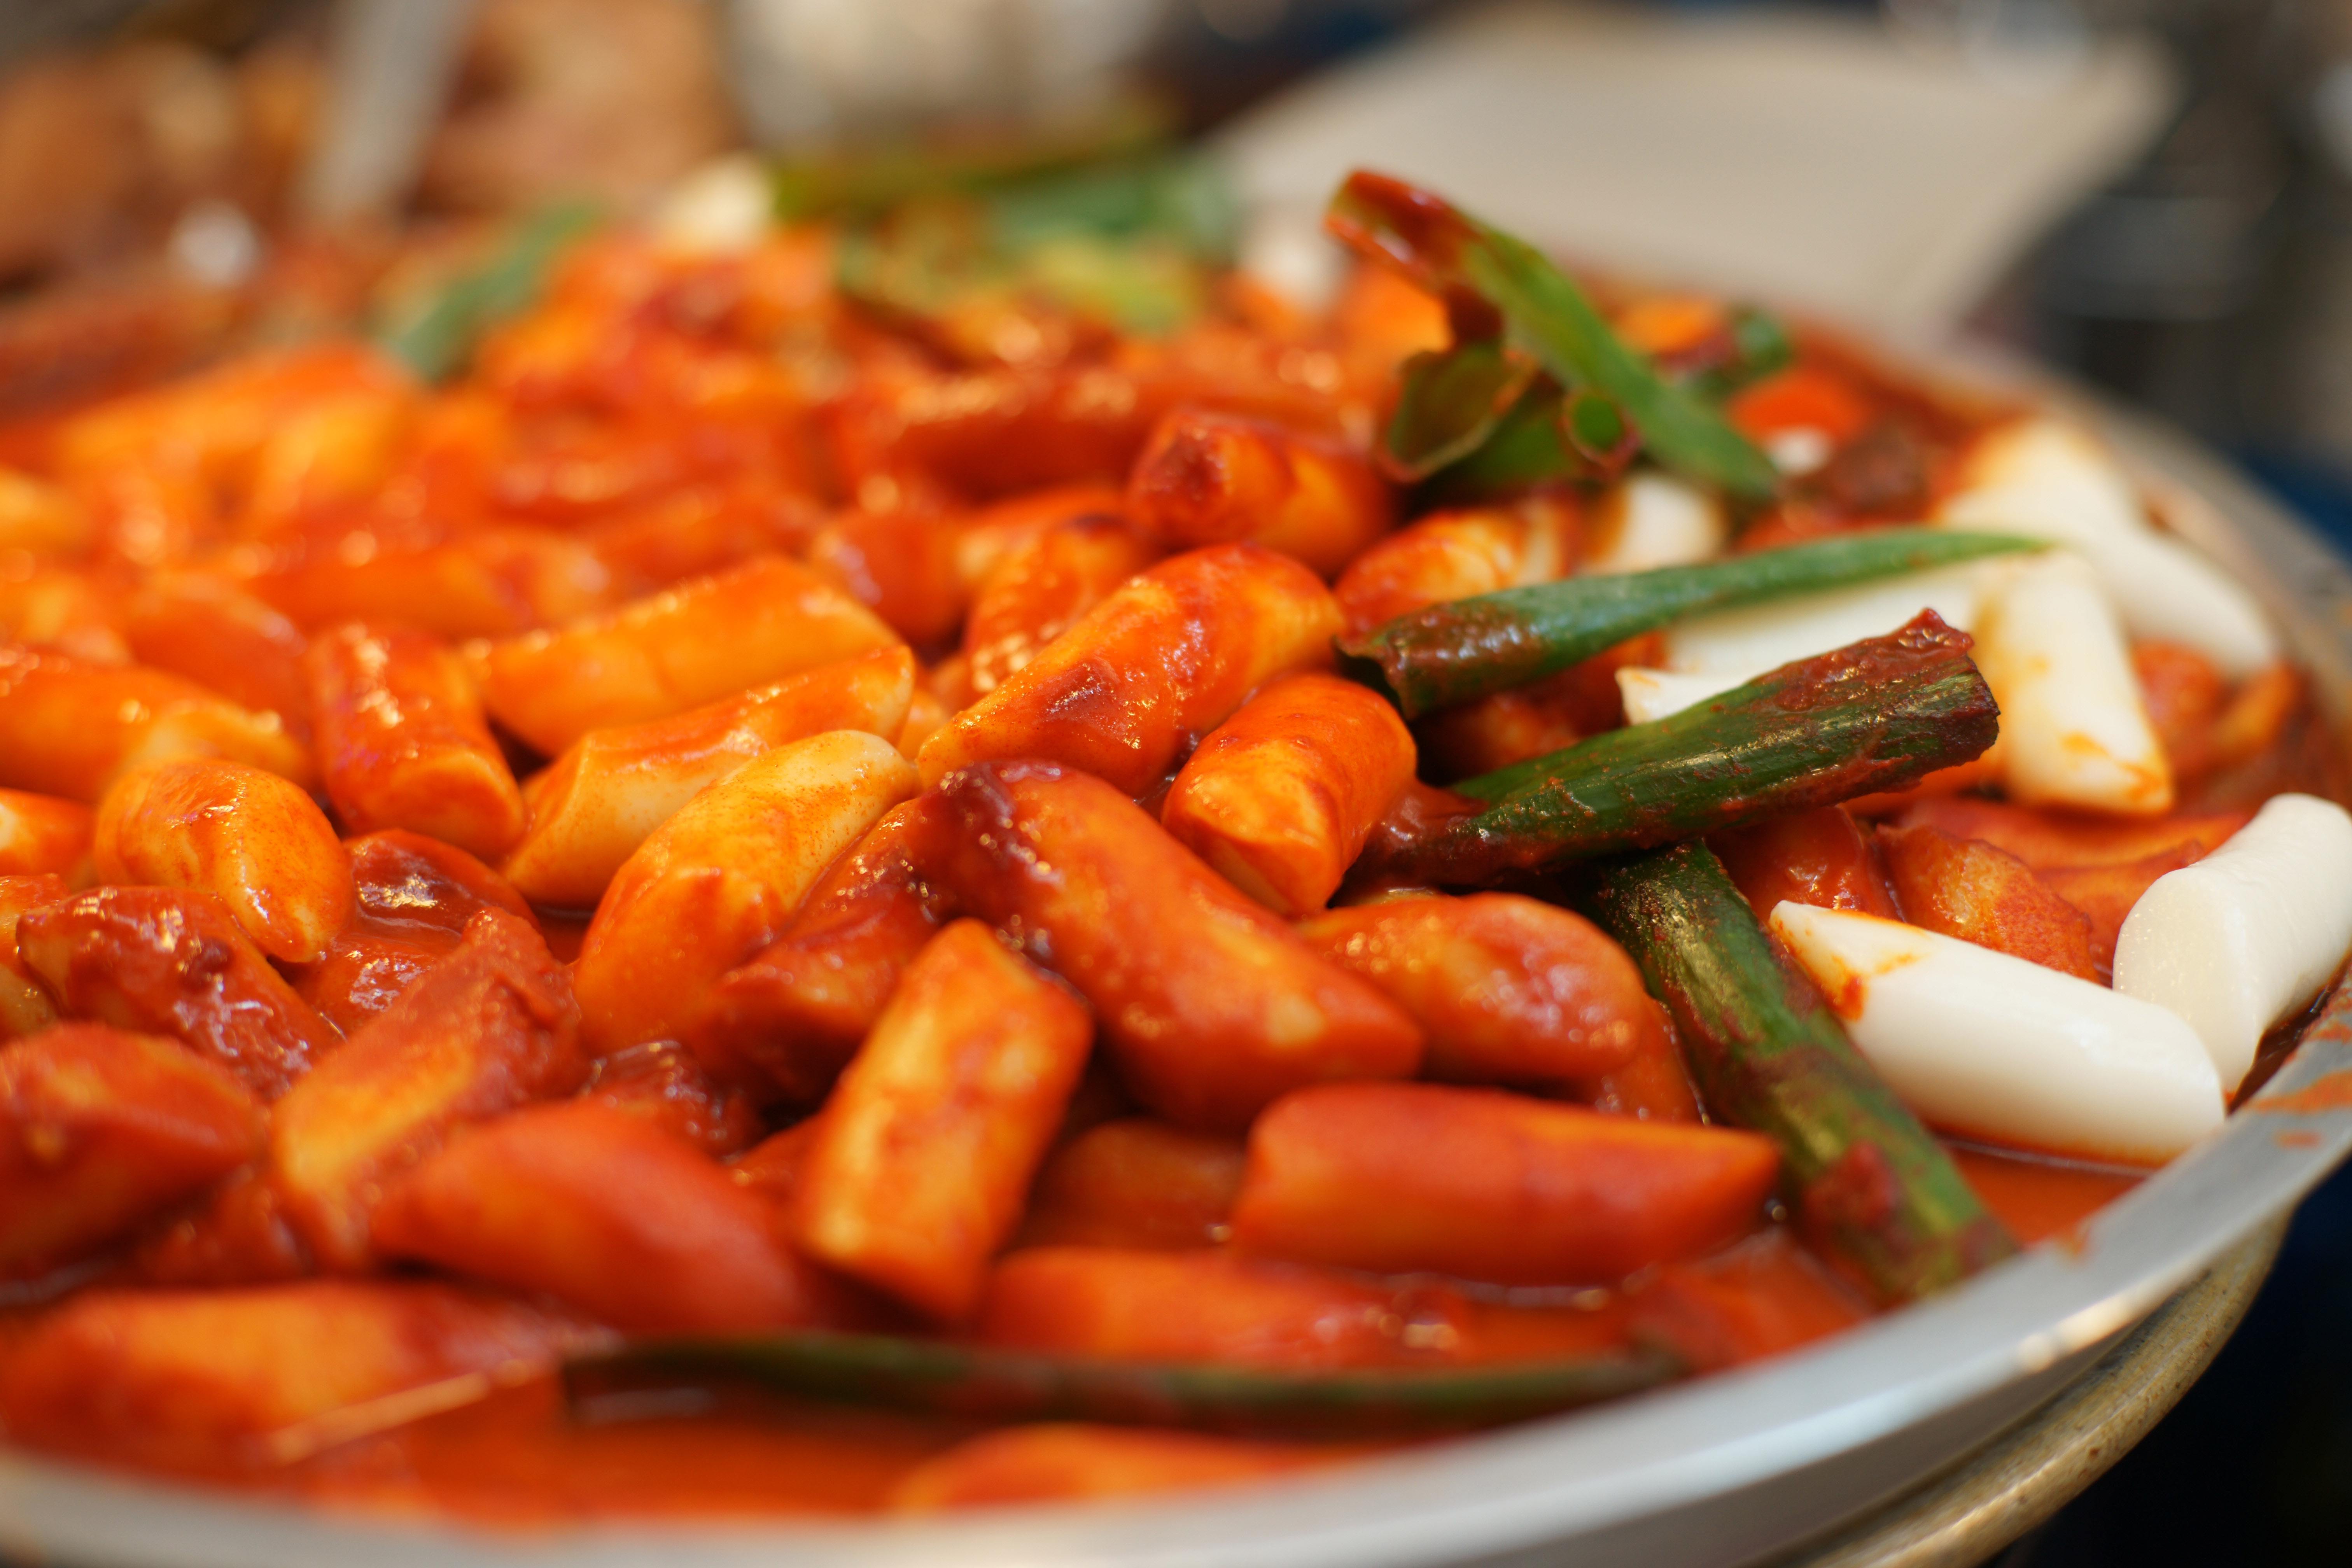 Korean Rice Cake Recipe Gochujang: Tteokbokki, Rice Cakes With Spicy Gochujang Sauce In South